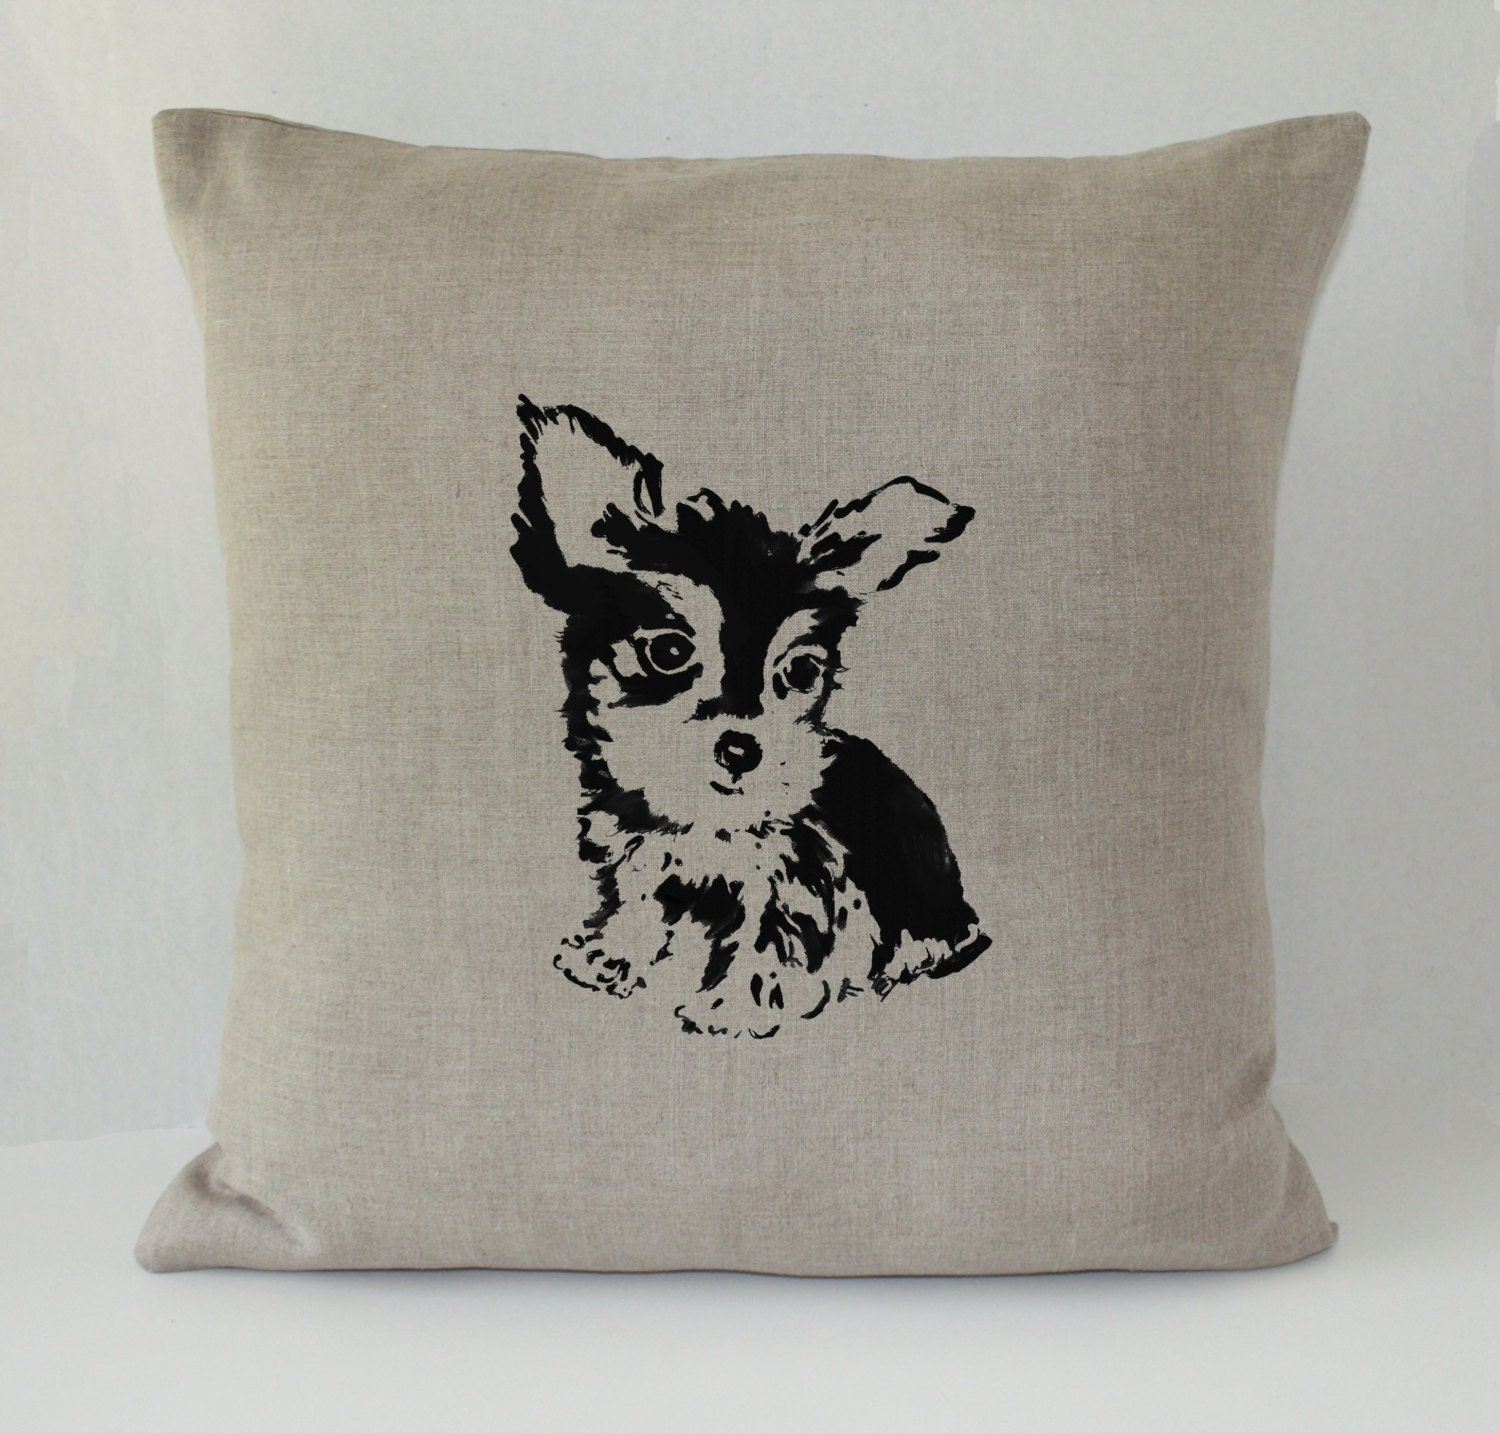 Yorkie Dog Decorative Throw Pillow Cover Irish Linen 20x20